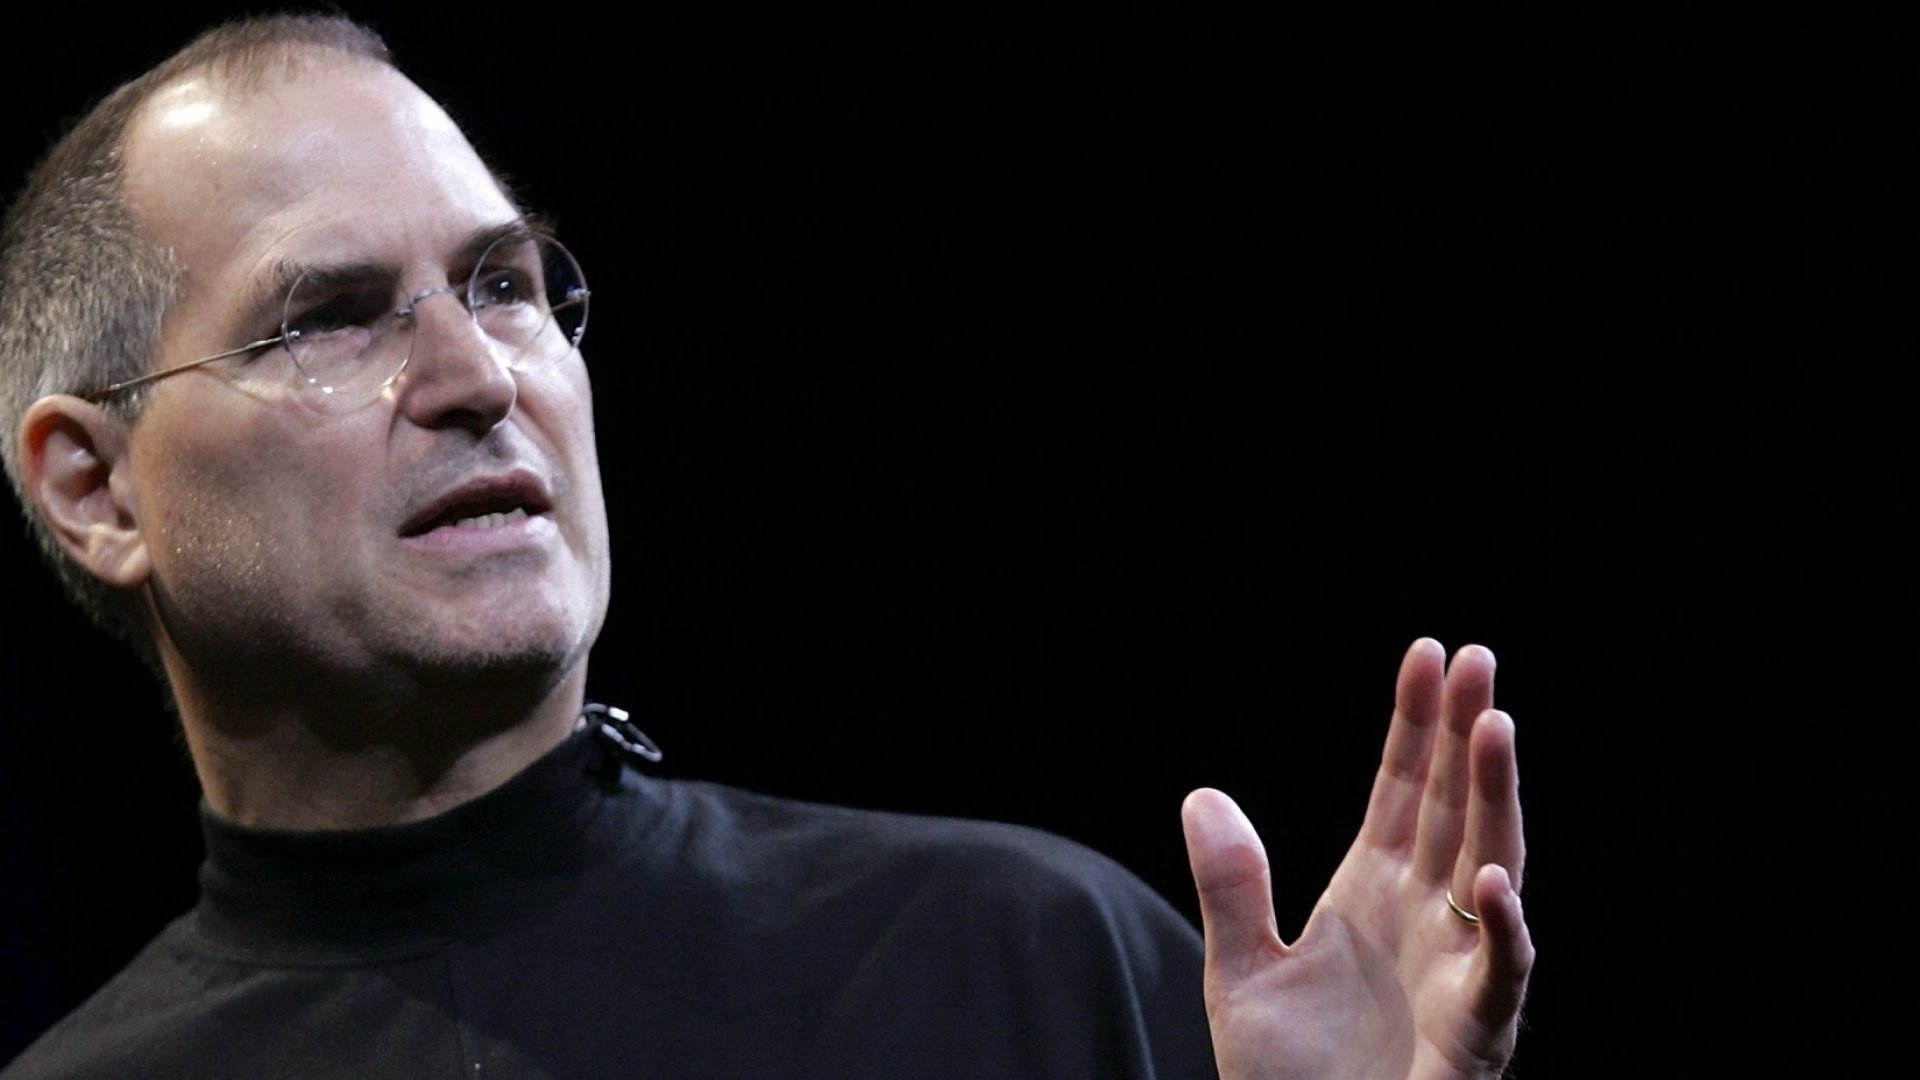 With 7 Short Words, Steve Jobs Gave This Apple Employee a Brilliant Lesson in Leadership